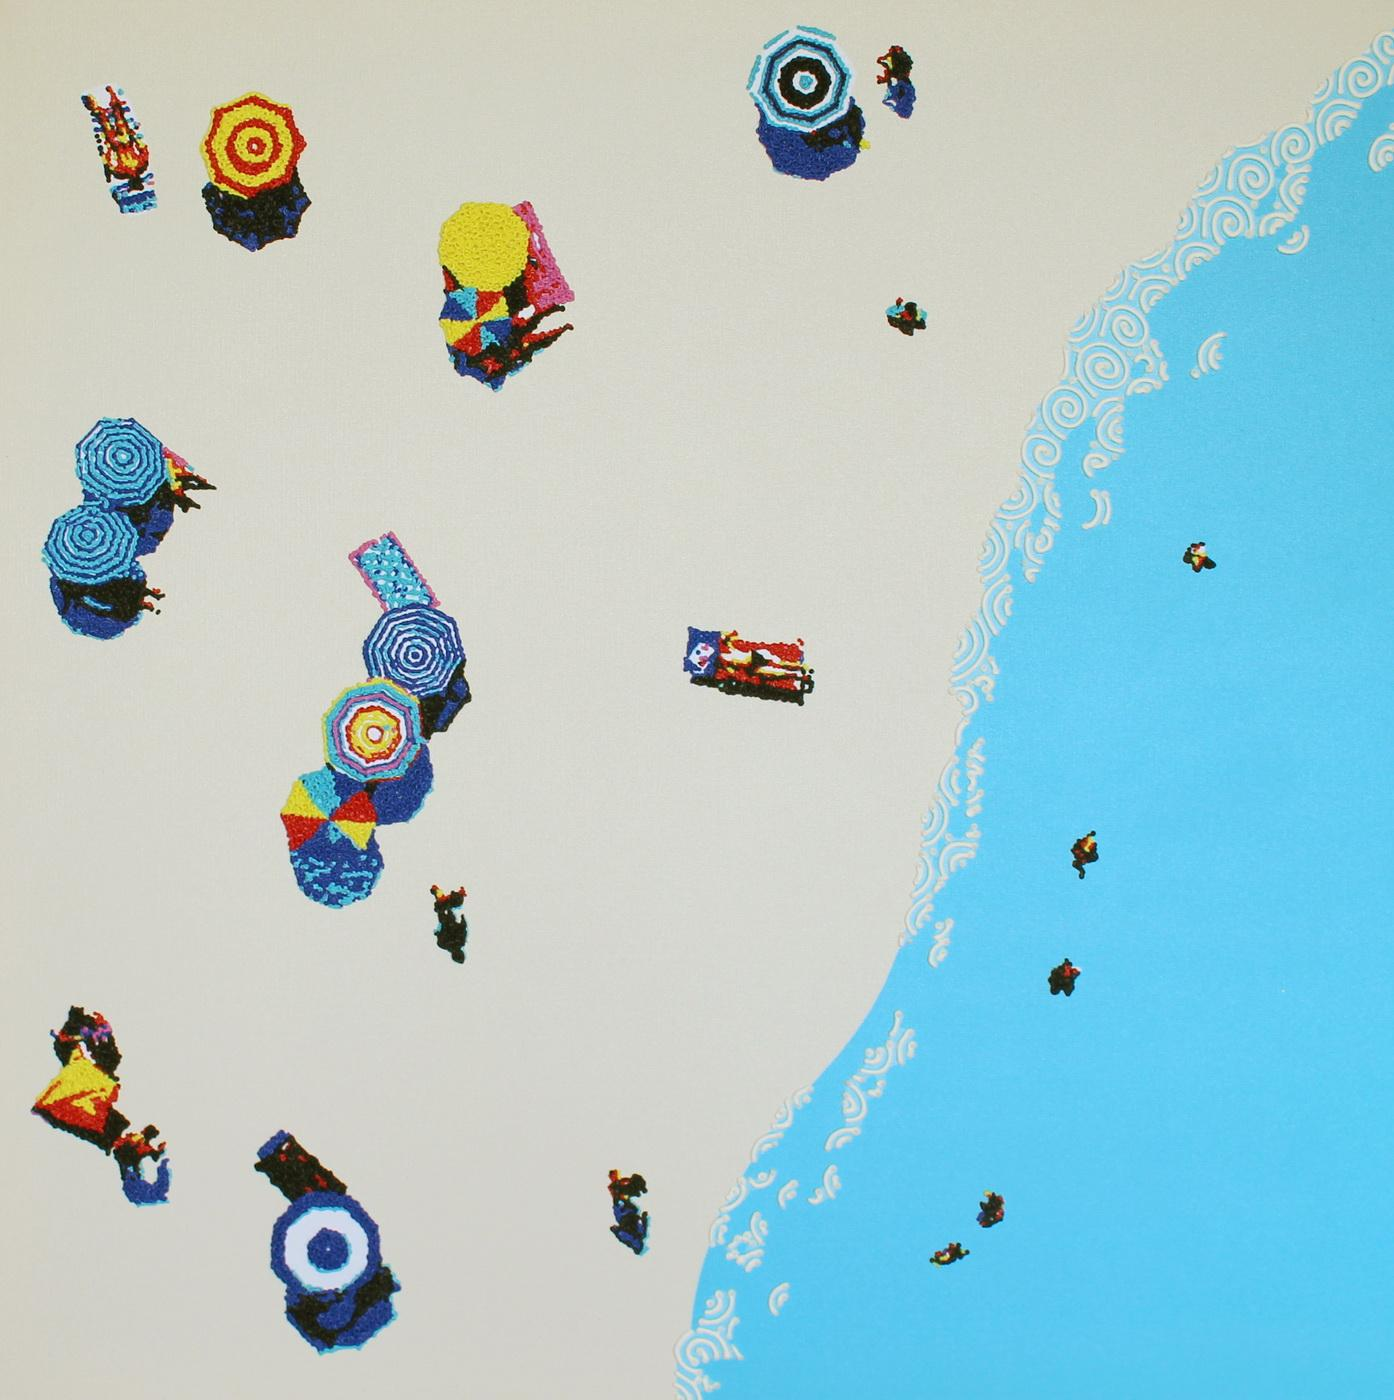 Aerial beach 2 - landscape painting